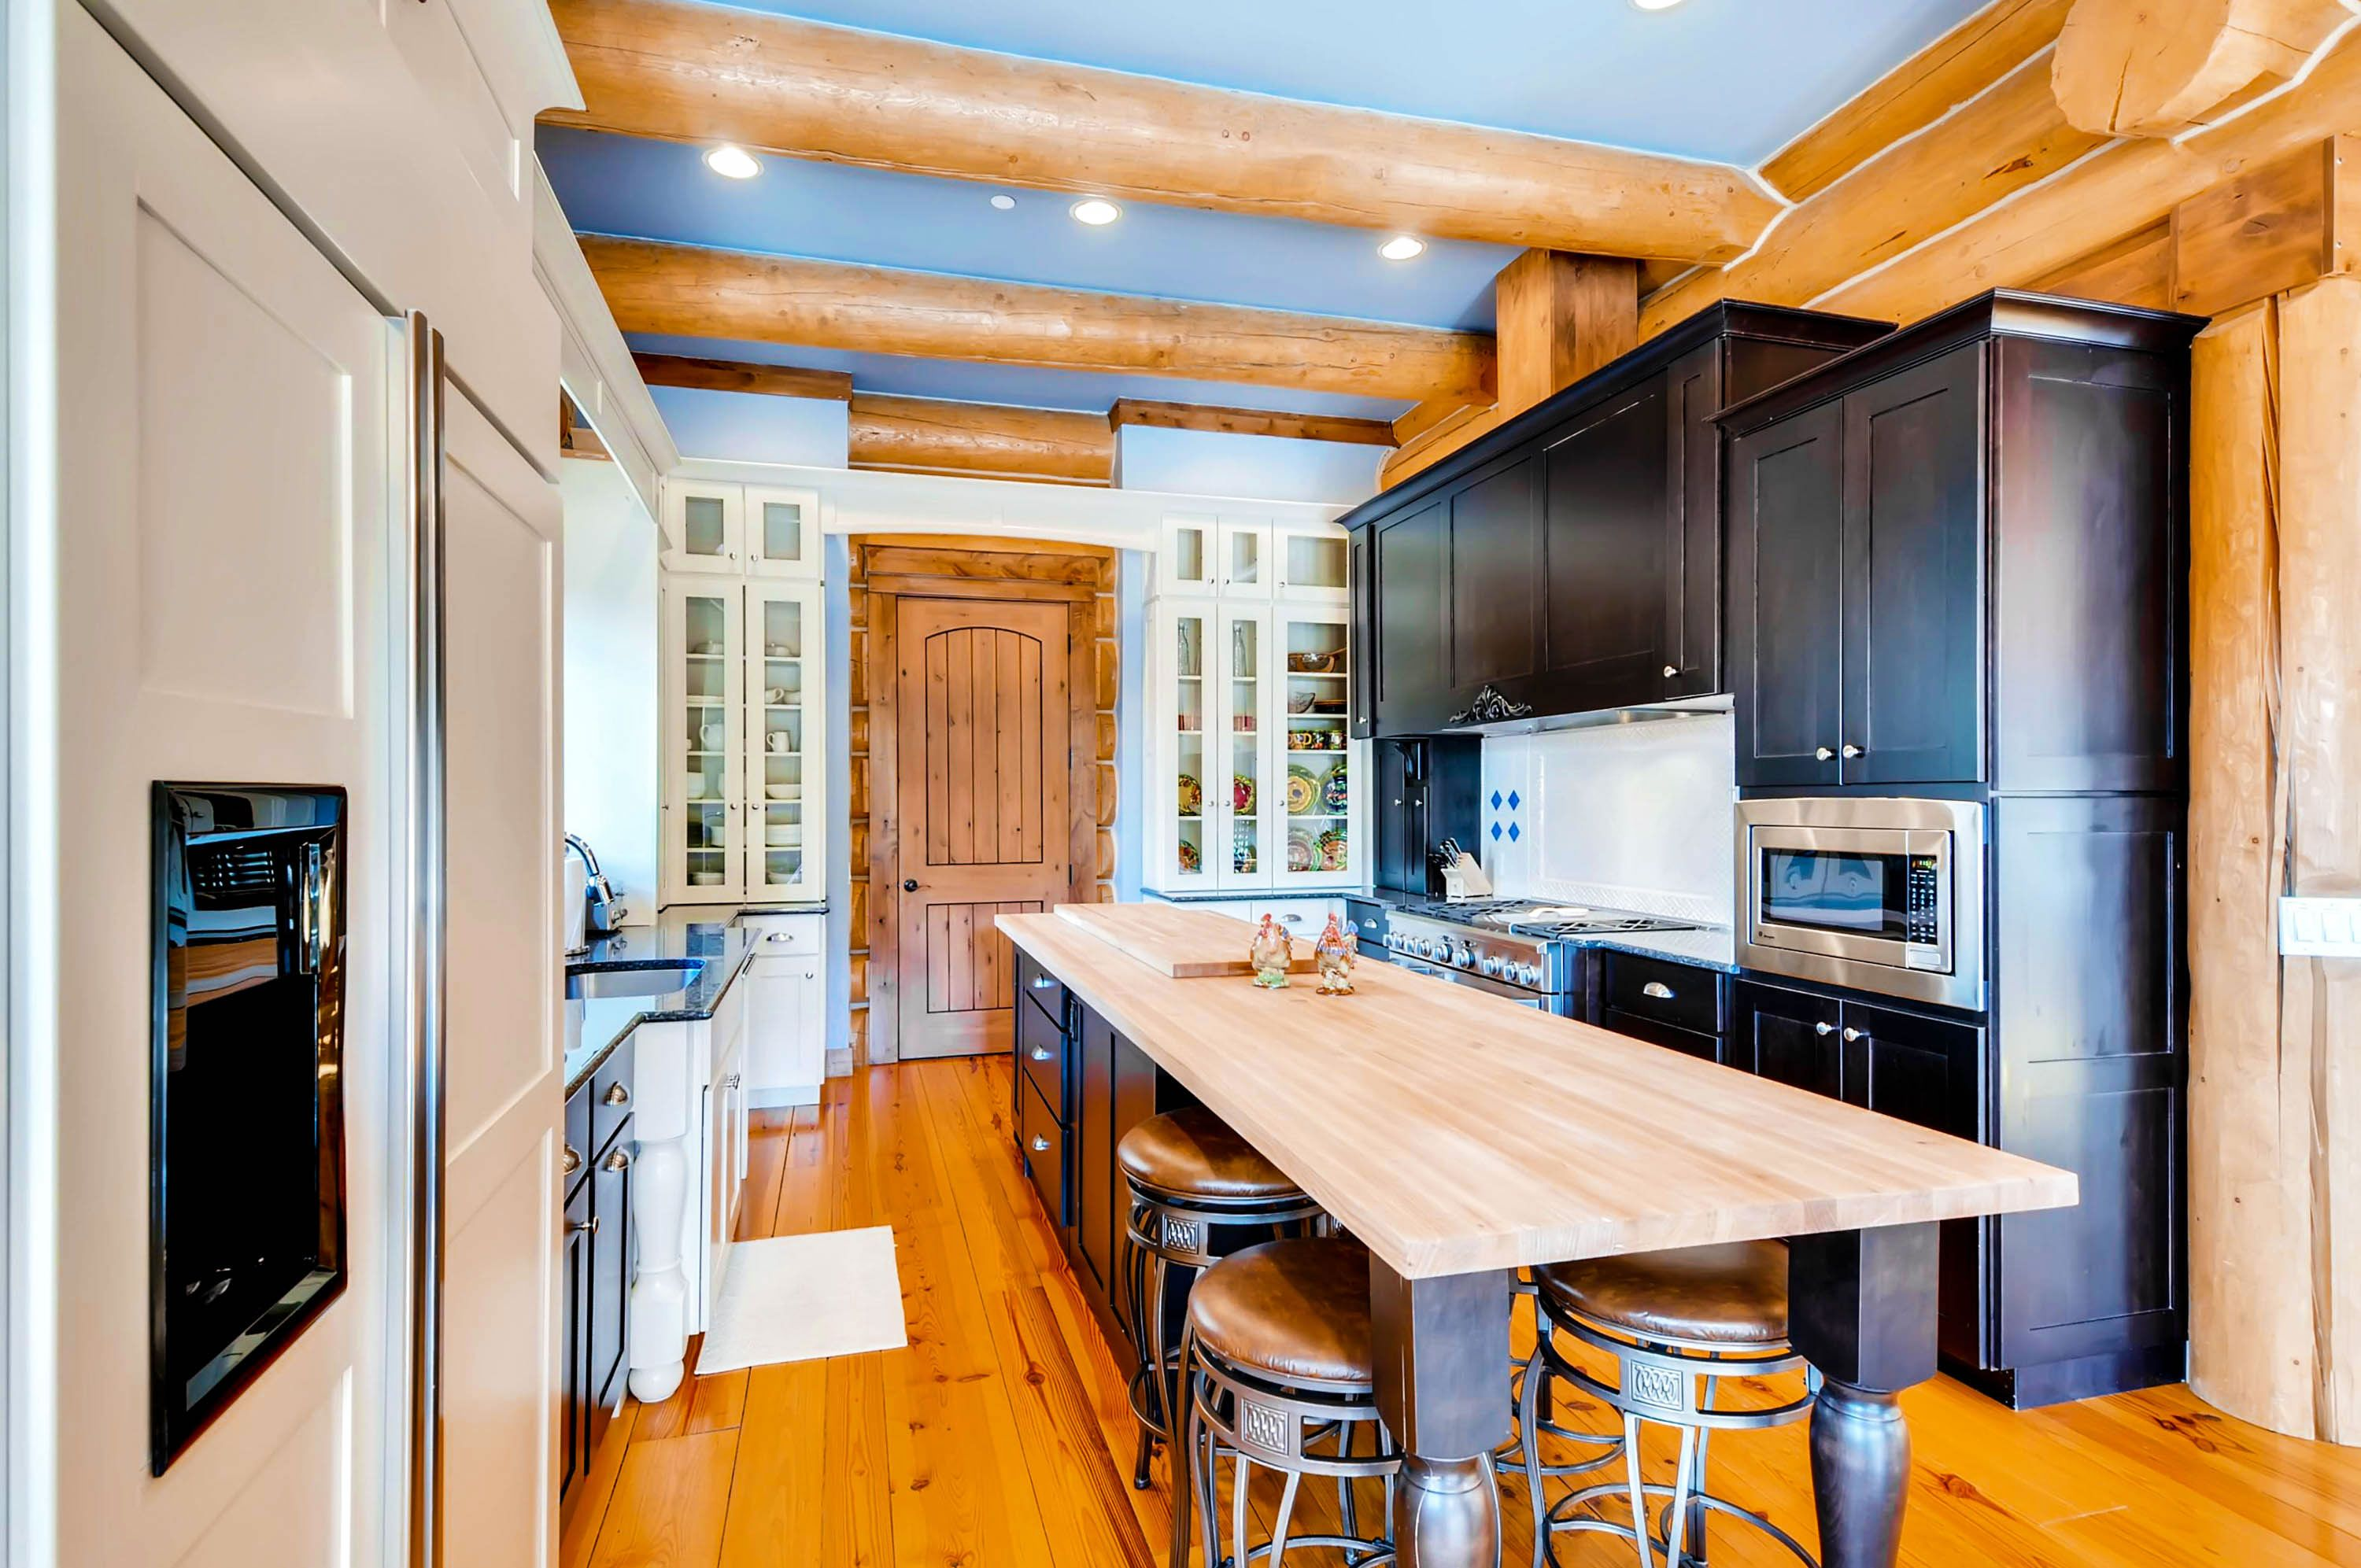 GoldenView Lodge | 6 Bedroom | 4.5 Bath | Sleeps 16 #staywithexcellence #breck